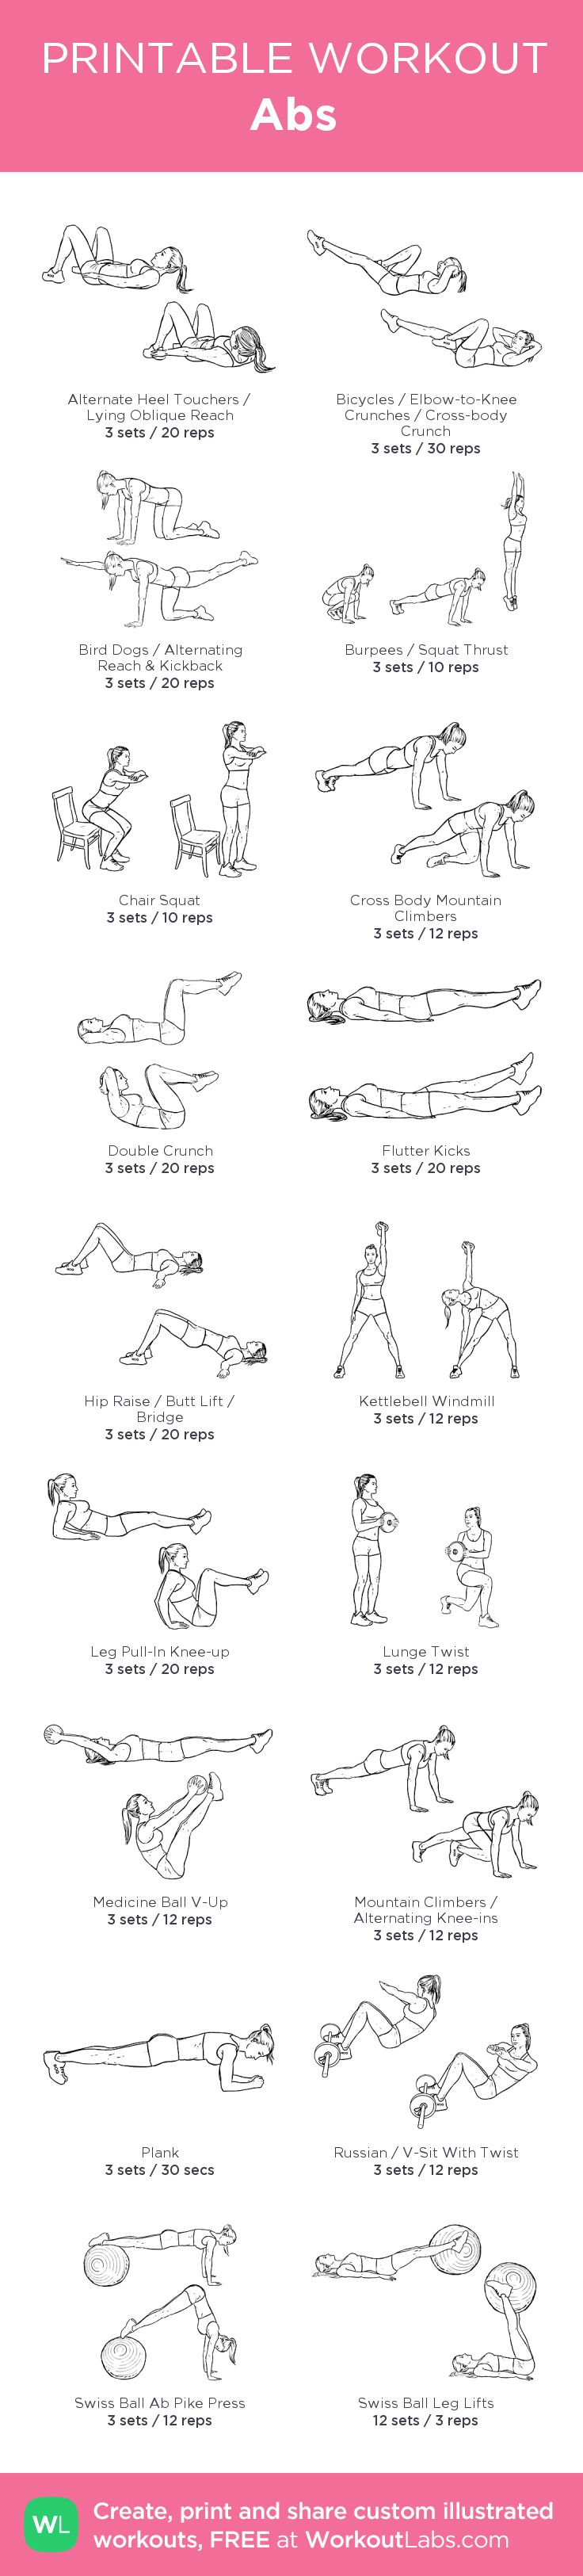 Abs – my custom workout created at WorkoutLabs.com • Click through to download as printable PDF! #customworkout